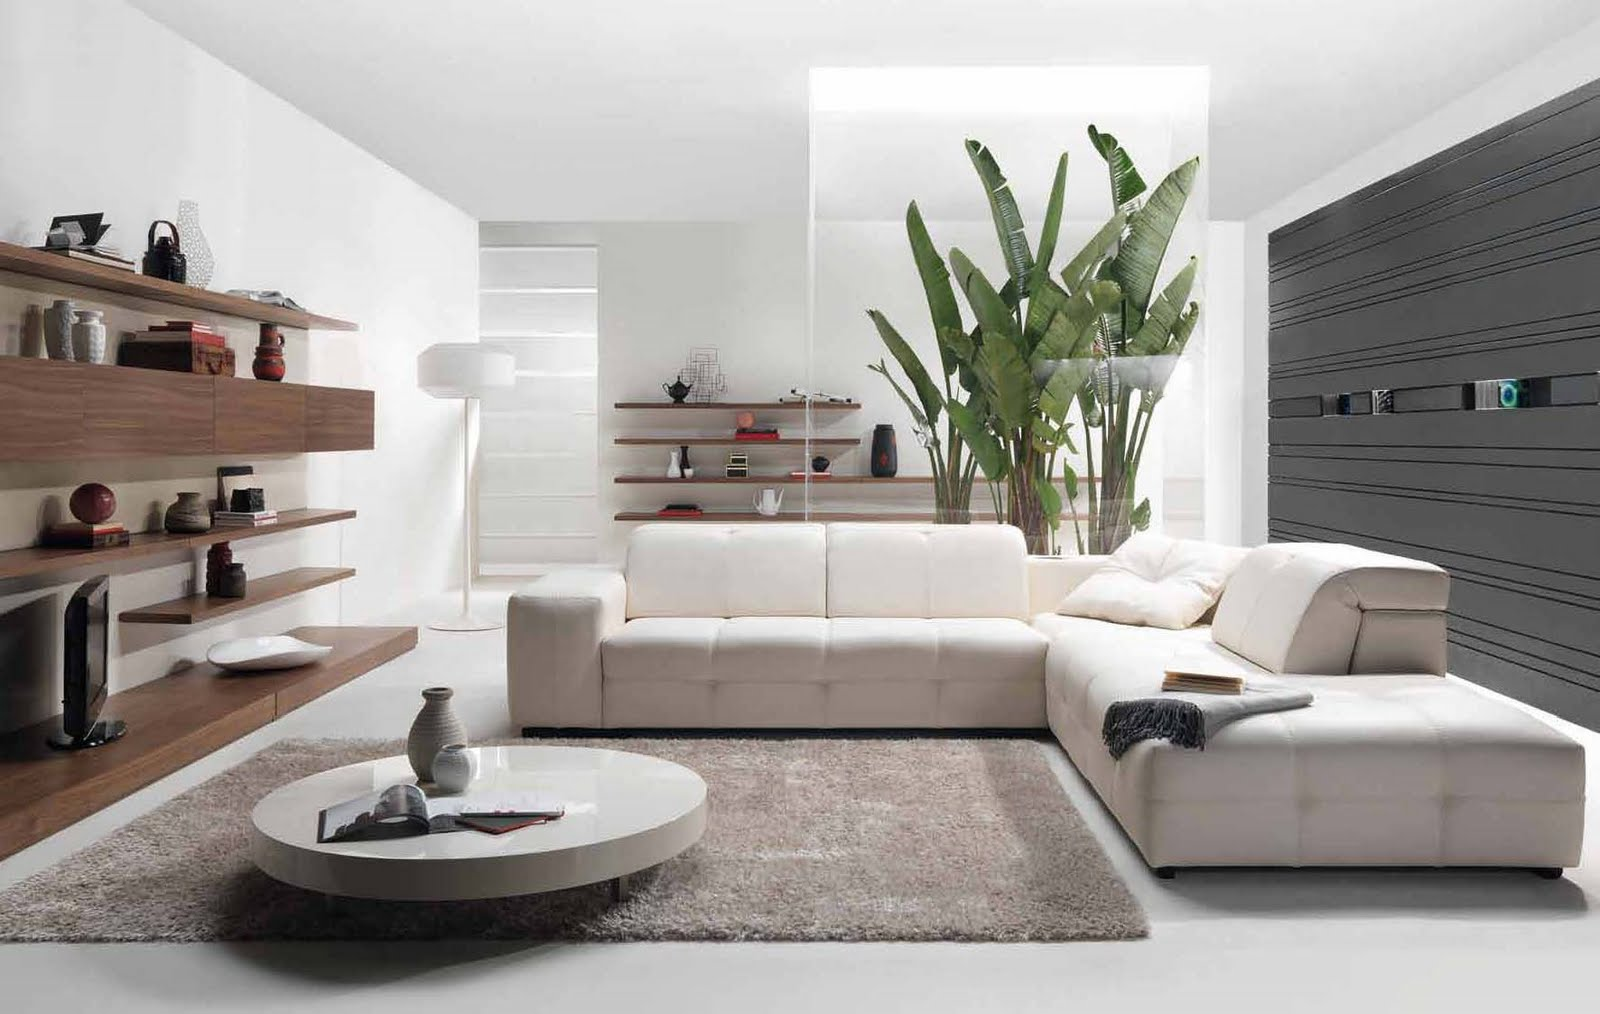 Future house design modern living room interior design for Modern living room design